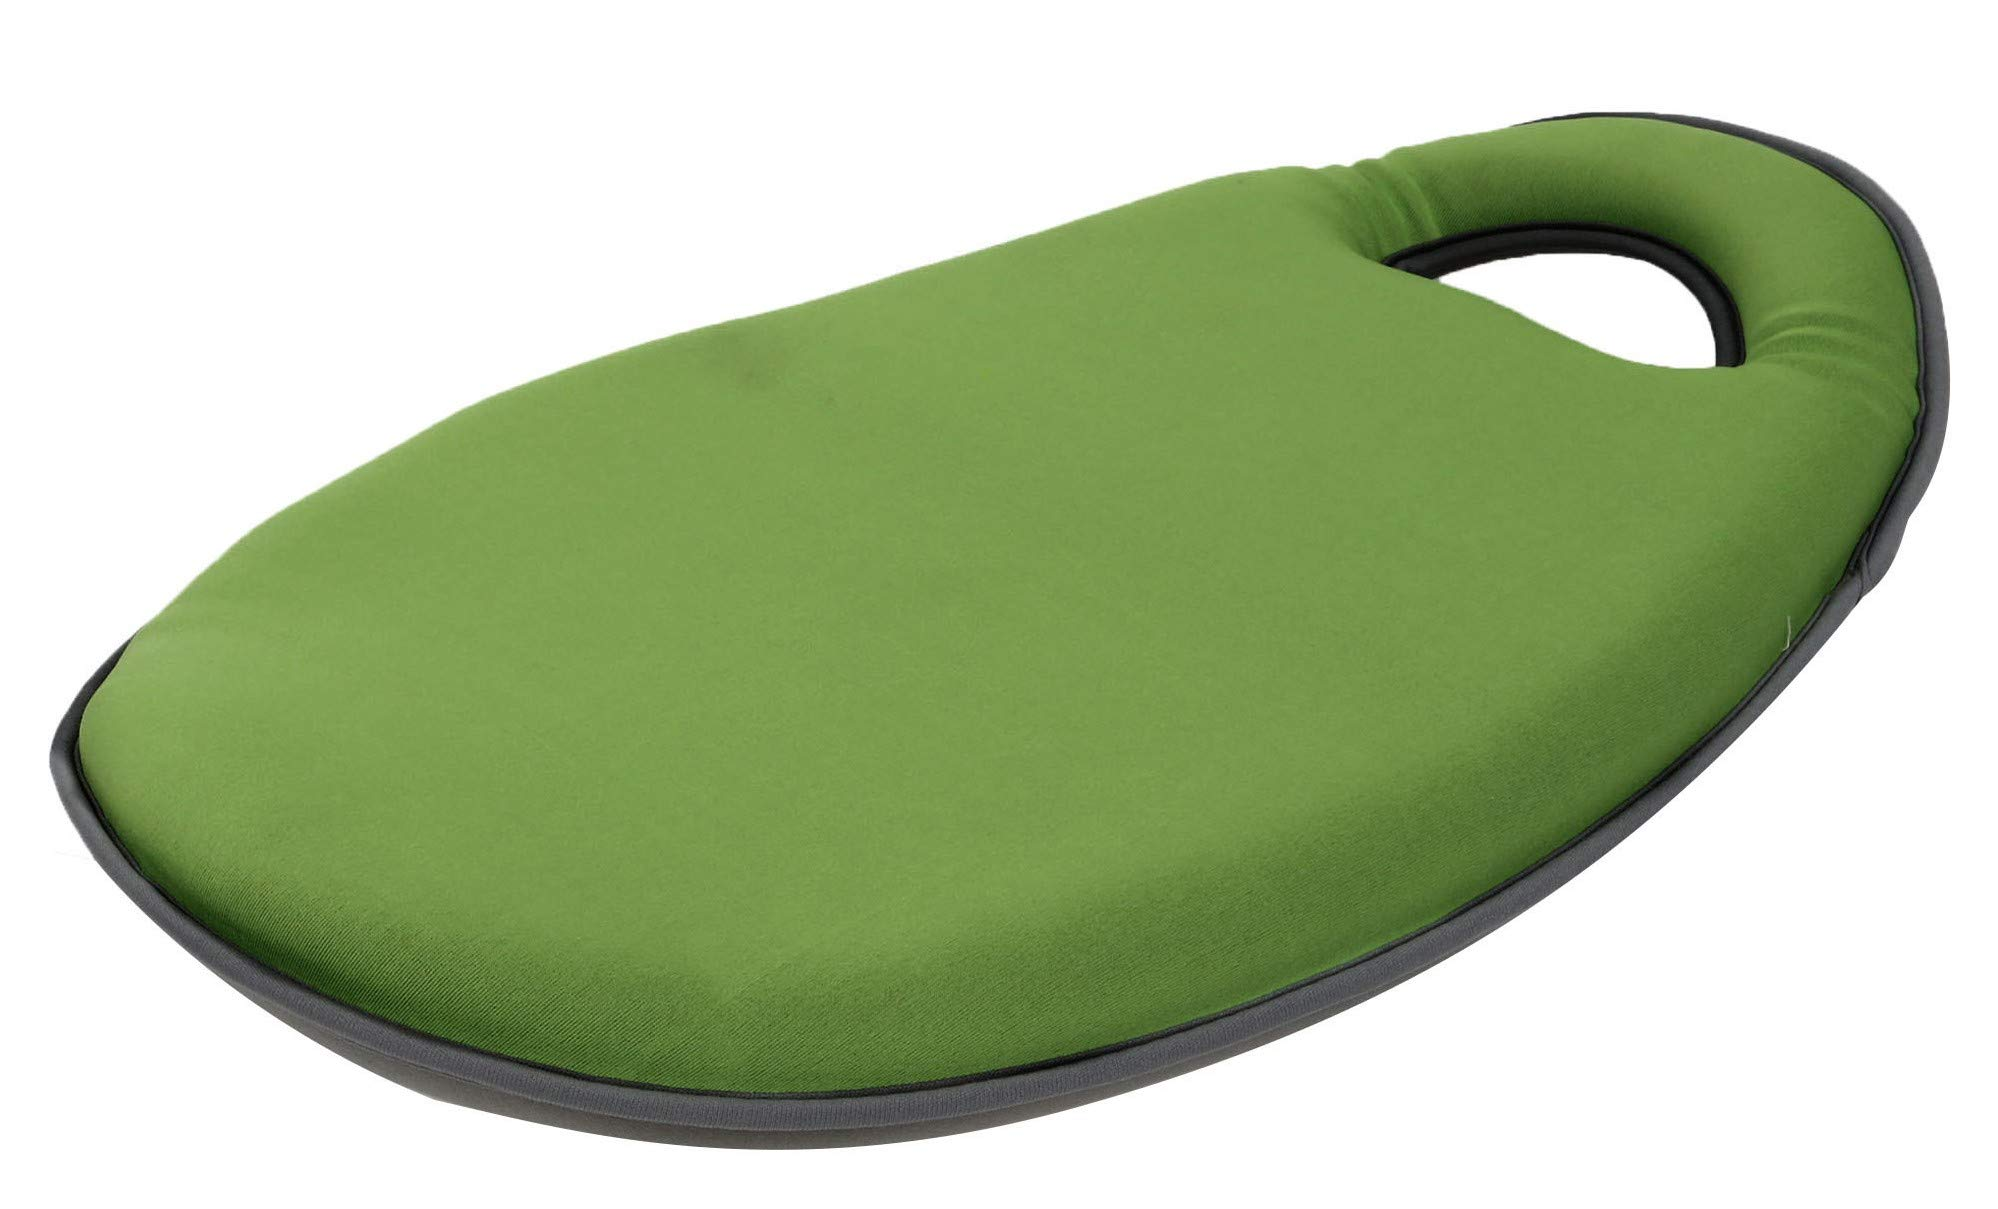 Comfortable Kneeling Pad for Scrubbing Floors, Gardening & Construction - Kneeling - Multi-use and Light Neoprene Fabric - Memory Foam - Color Light Green - Stylish and Unique Design